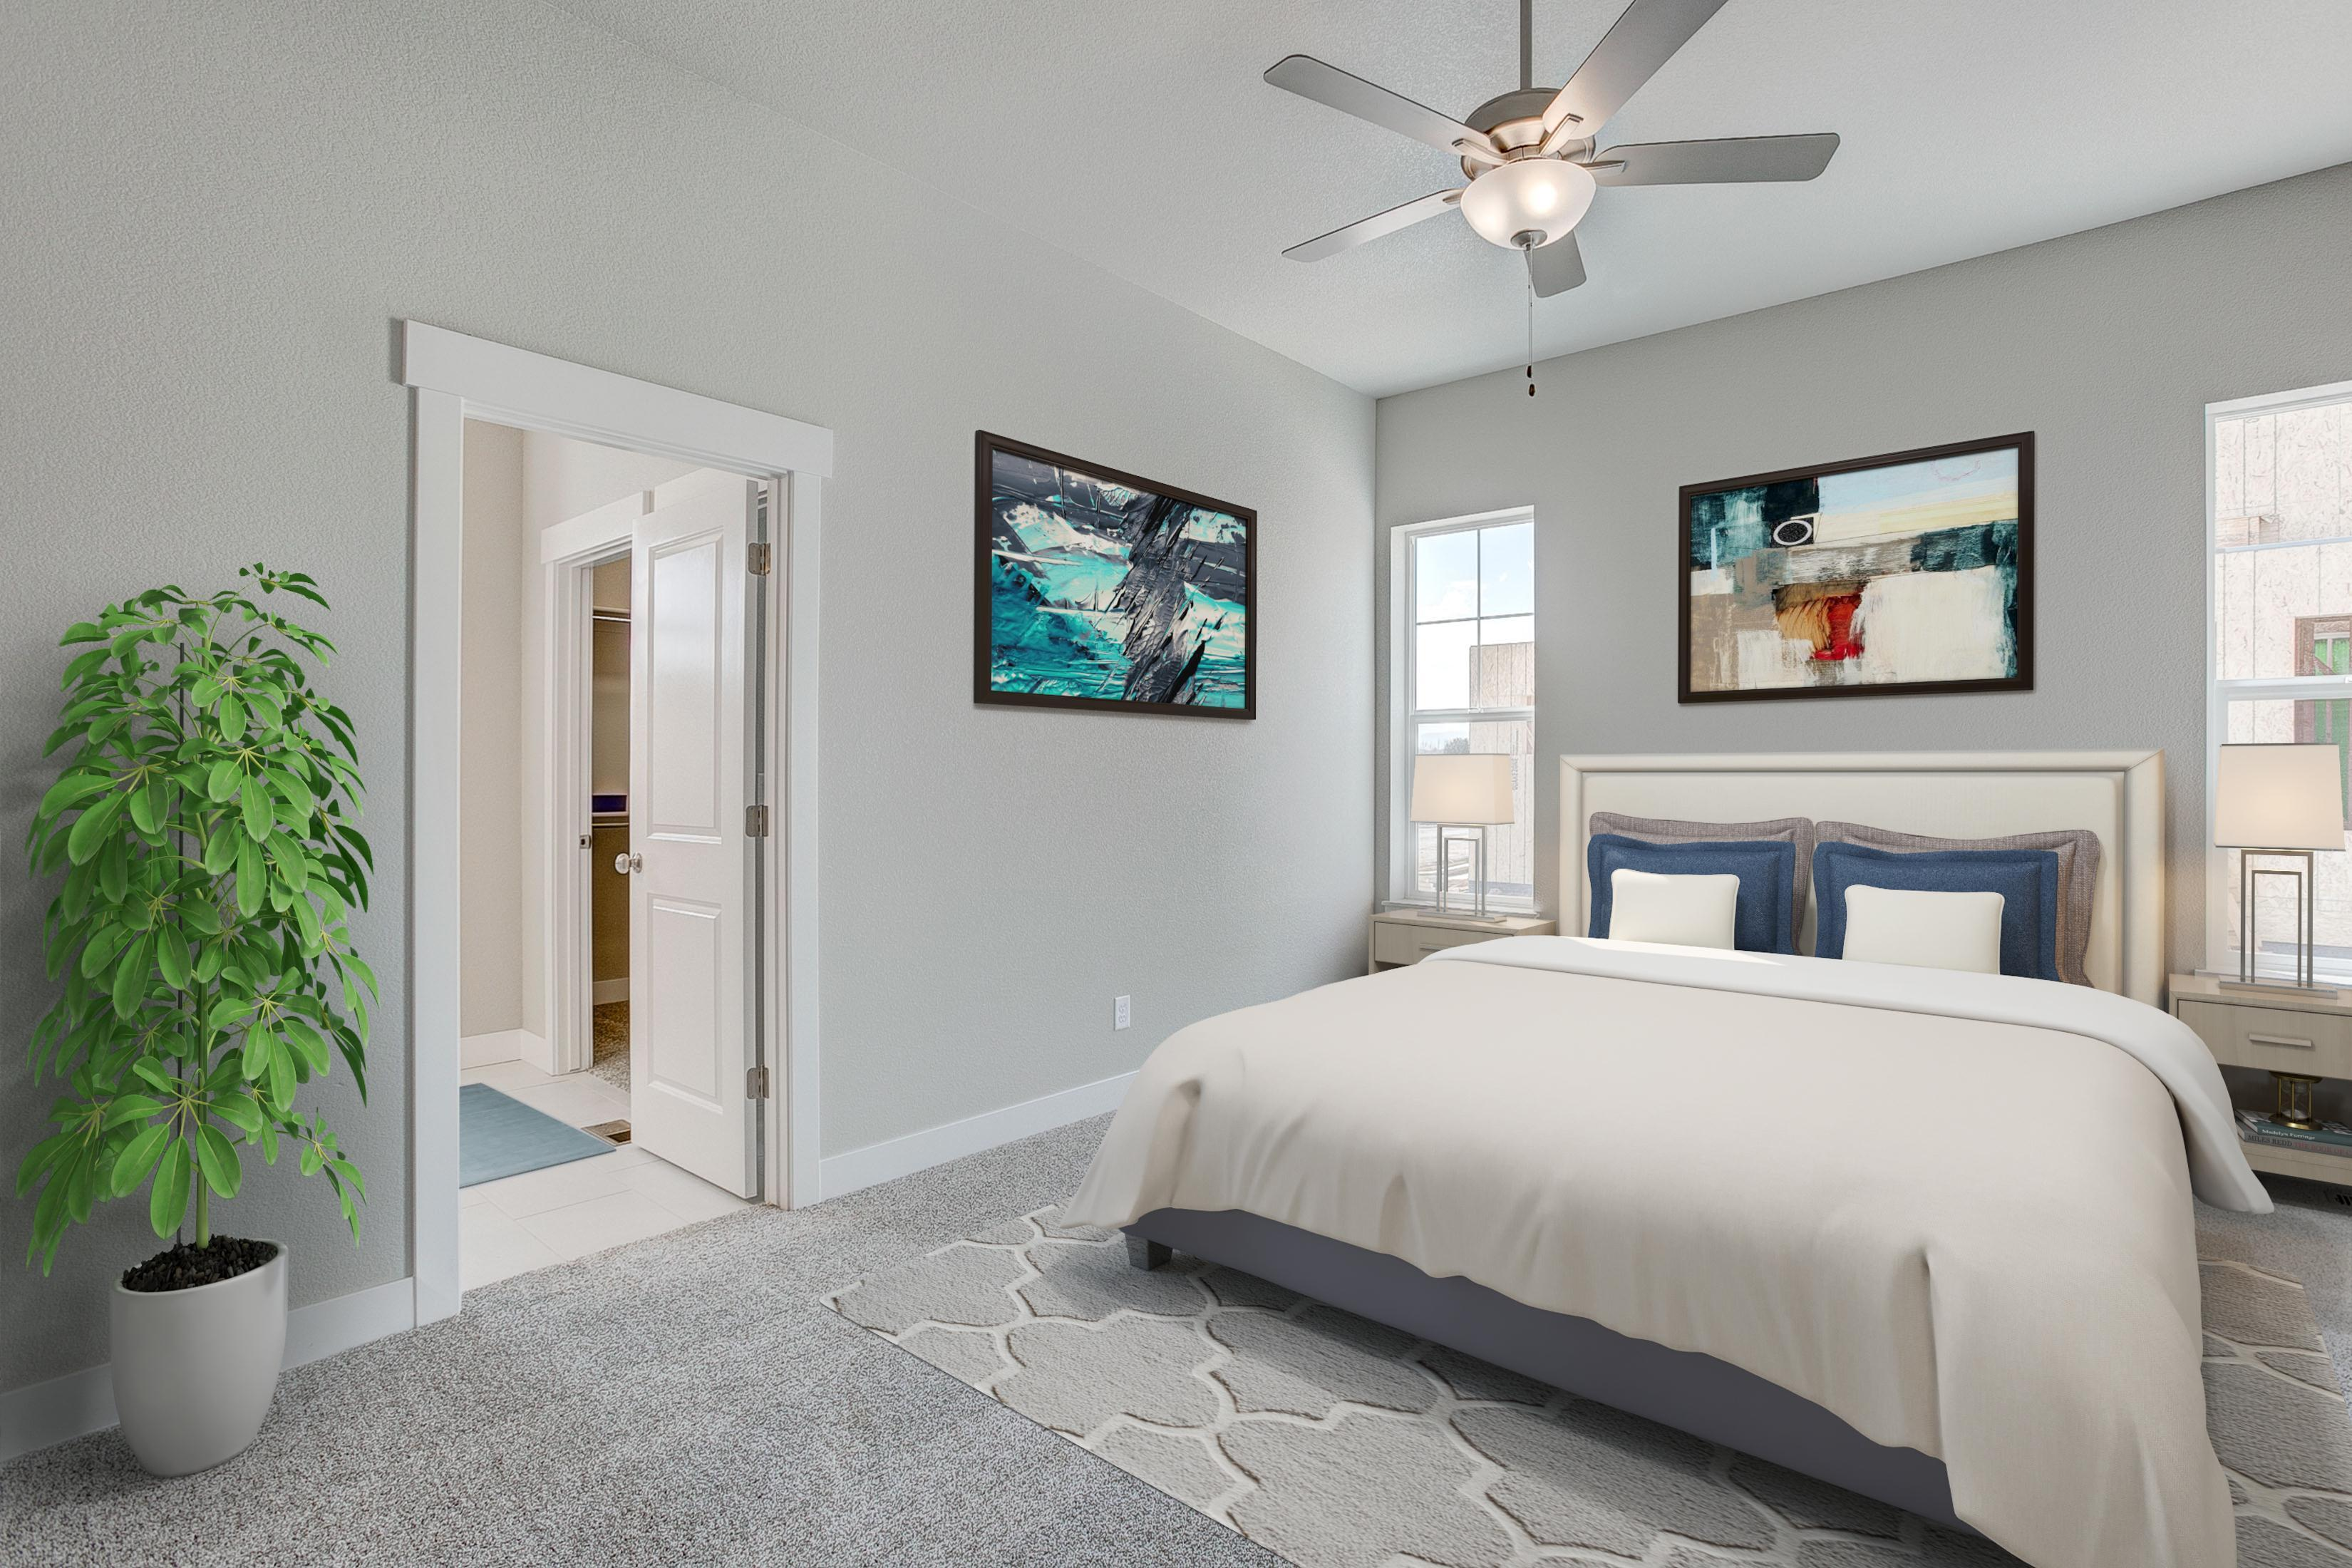 Bedroom featured in the Devon By Landmark Homes  in Fort Collins-Loveland, CO